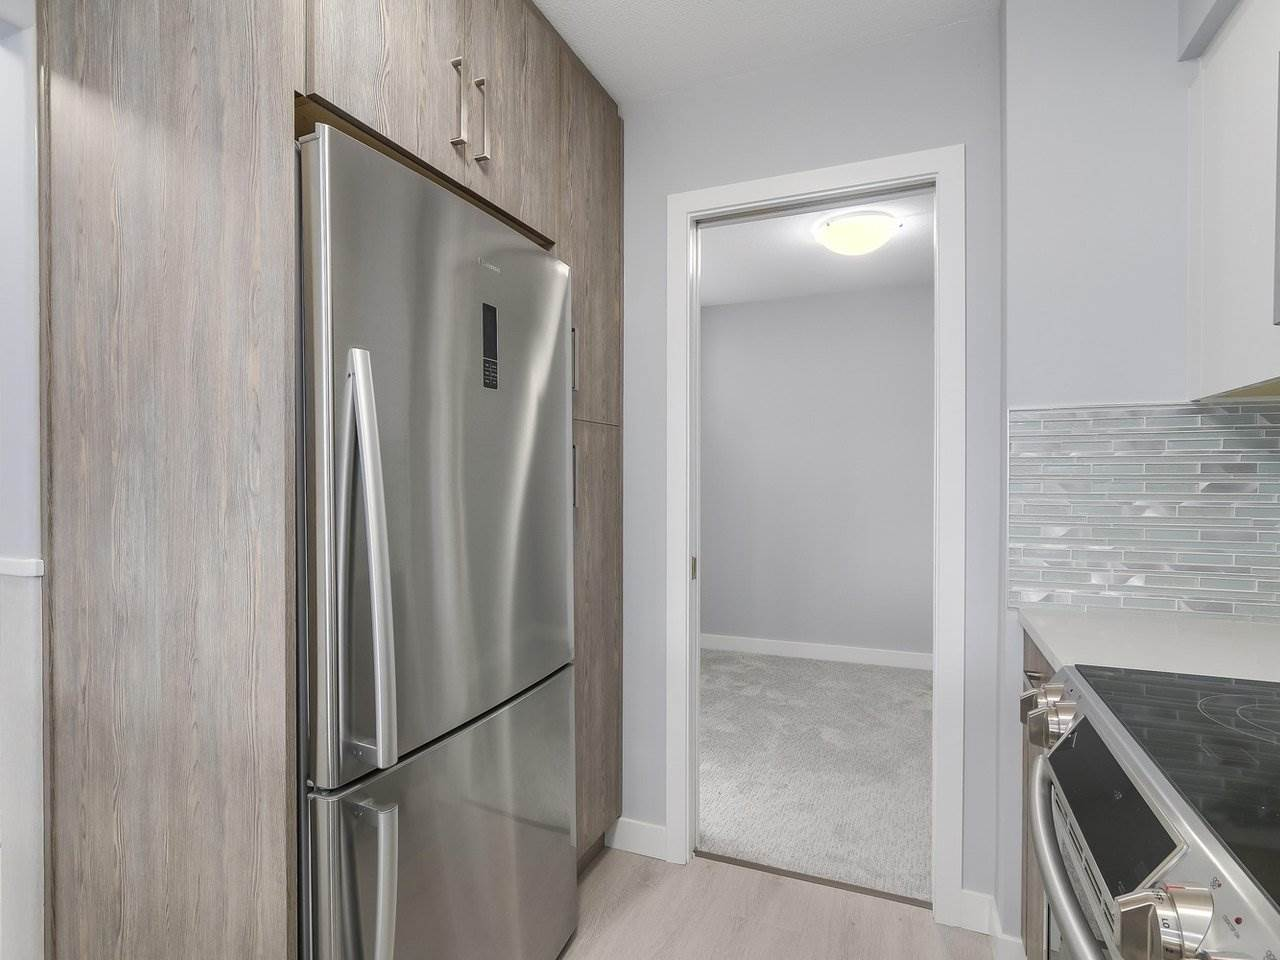 Condo Apartment at 312 4893 CLARENDON STREET, Unit 312, Vancouver East, British Columbia. Image 10